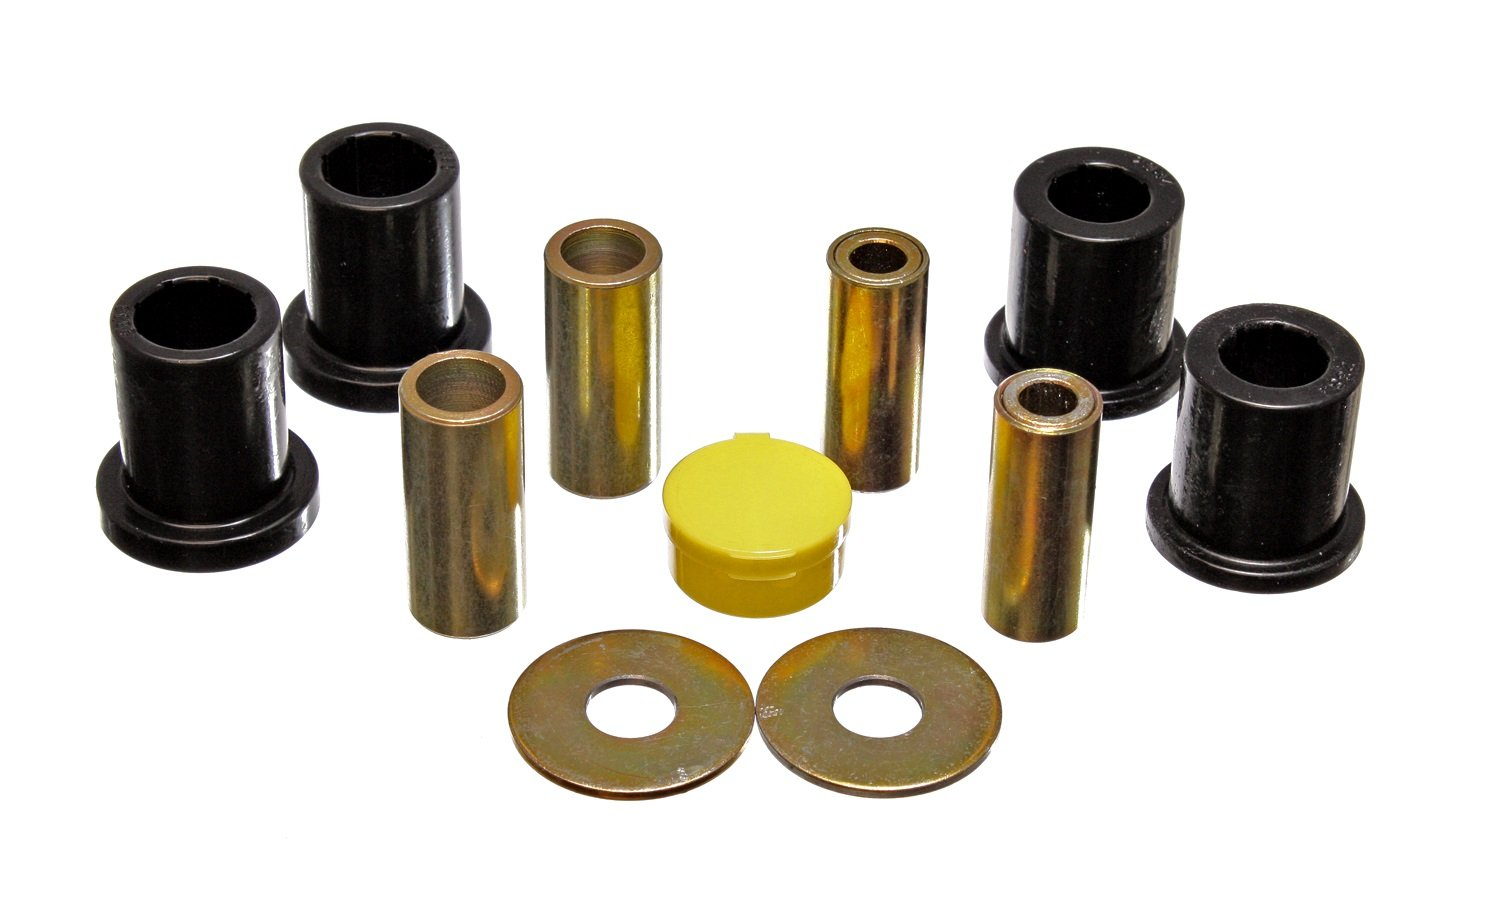 Energy Suspension 4.3152G CONTROL ARM BUSHING SET by Energy Suspension